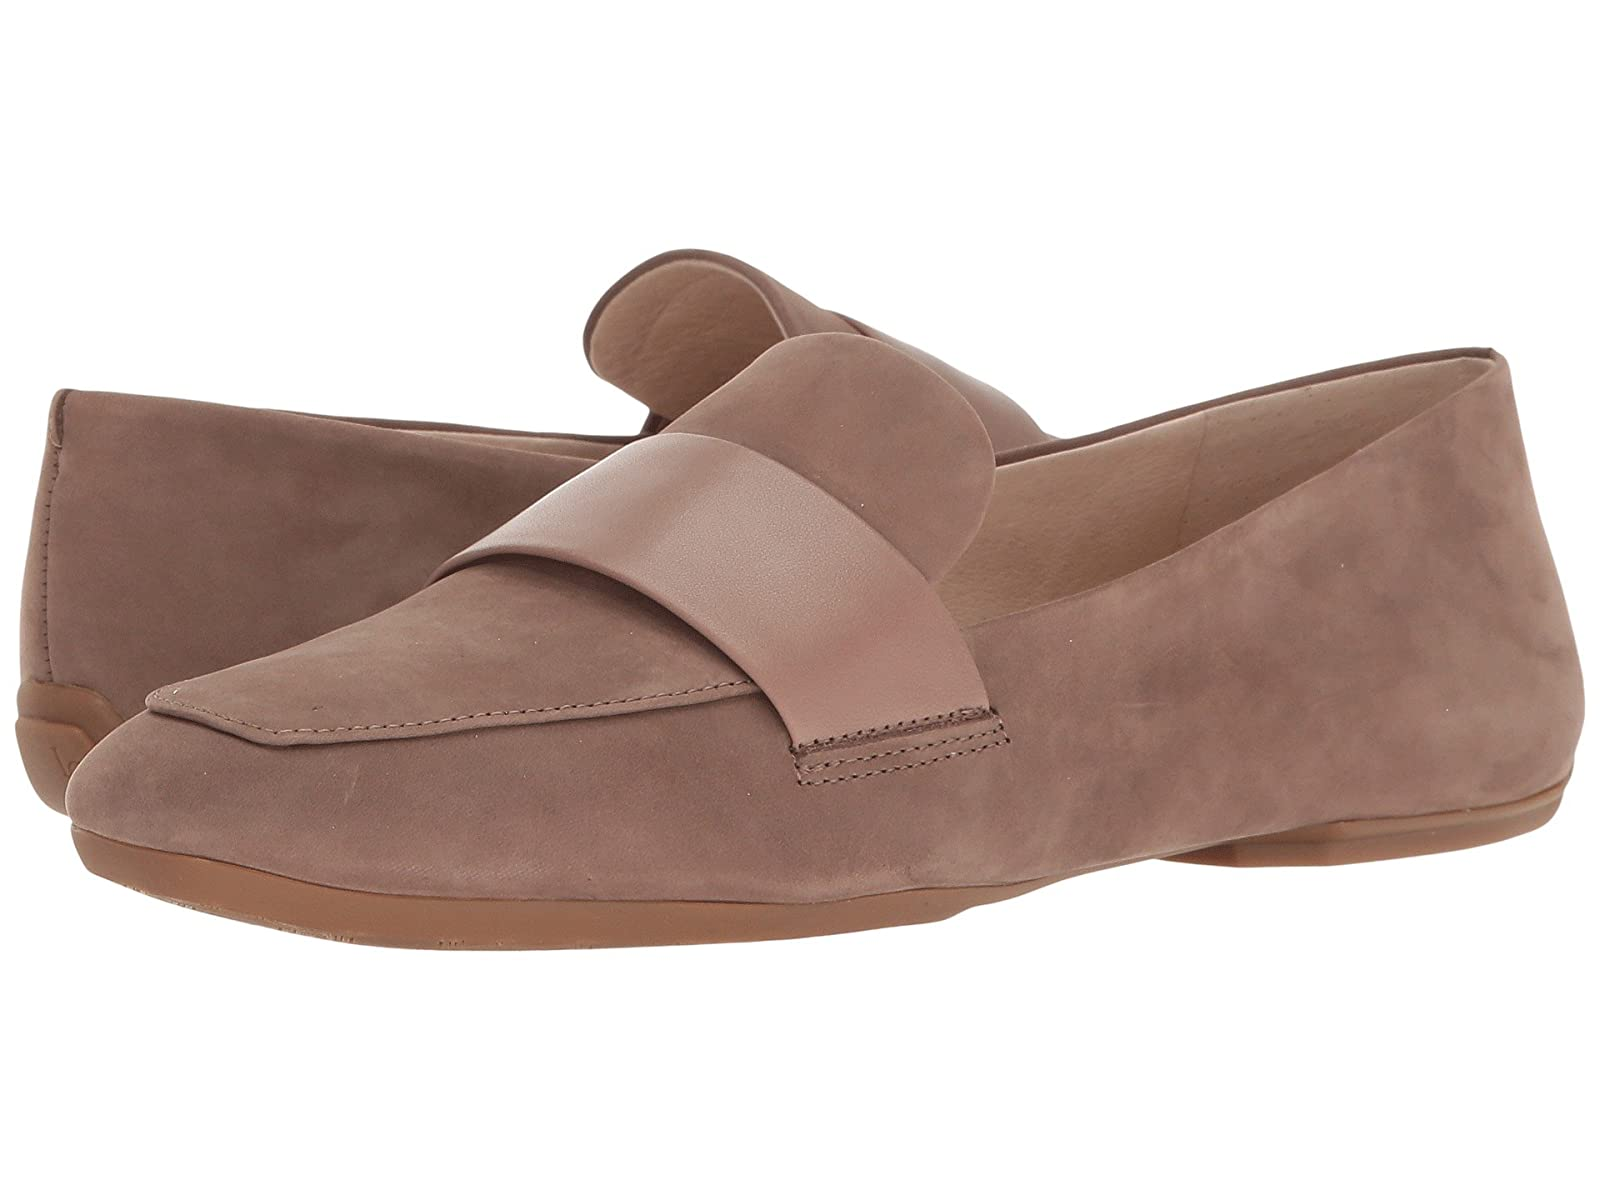 Louise et Cie BarsoCheap and distinctive eye-catching shoes